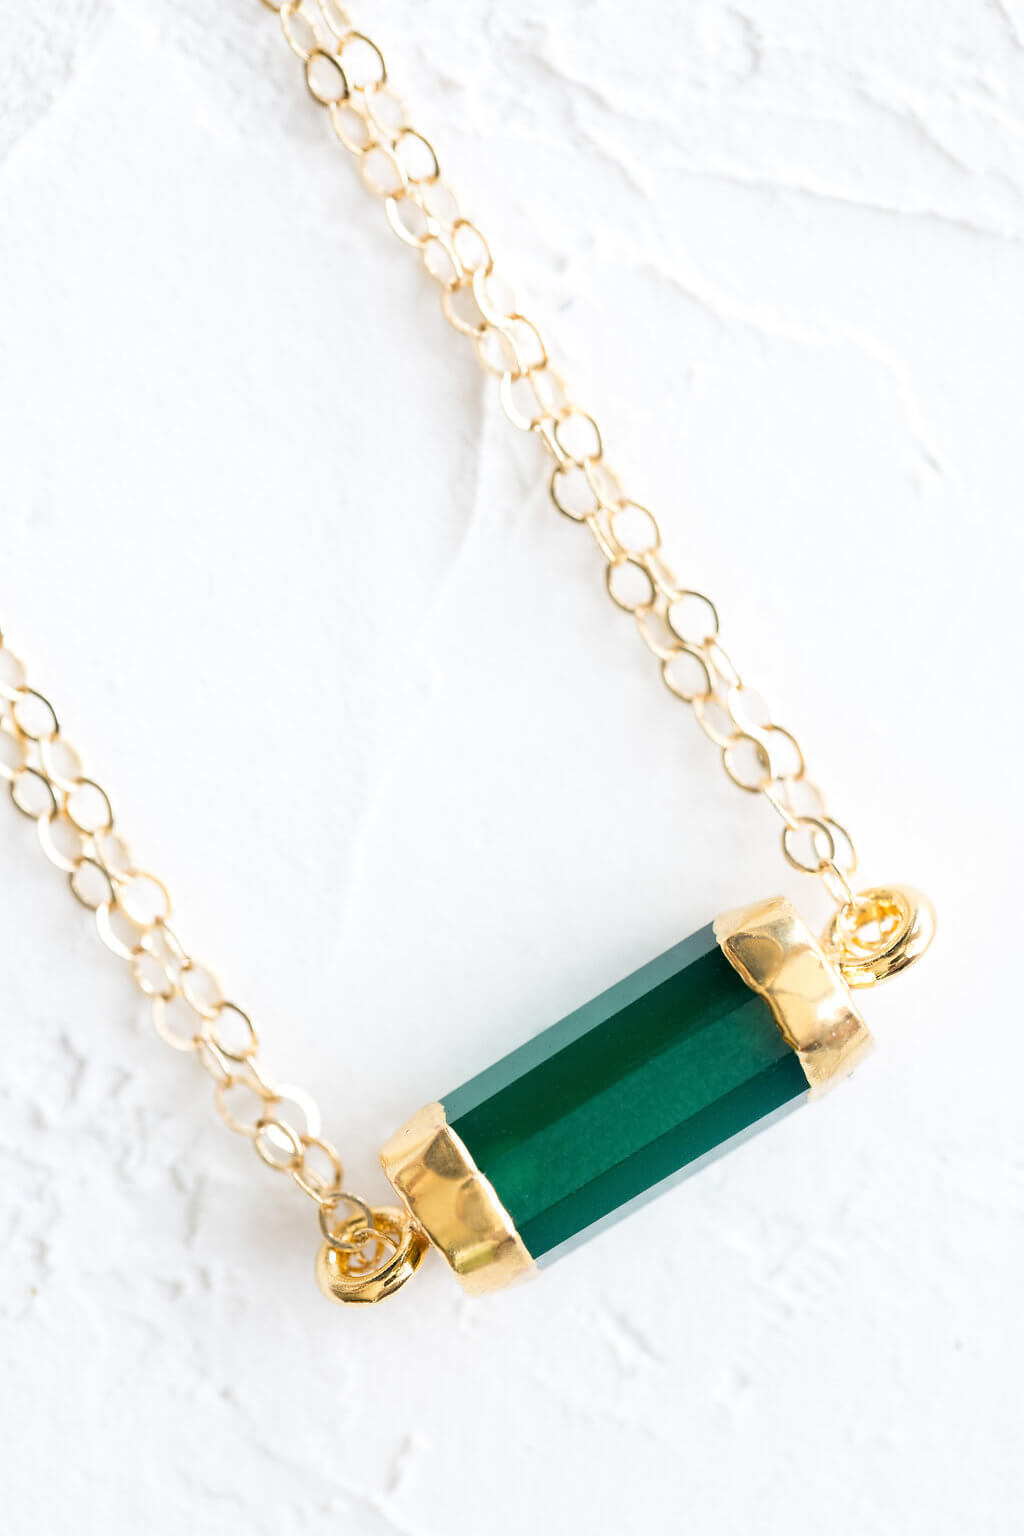 inspiration collections products green patience ashworth gold necklace jewellery briolette jacqueline love onyx emerald jacquelineashworth